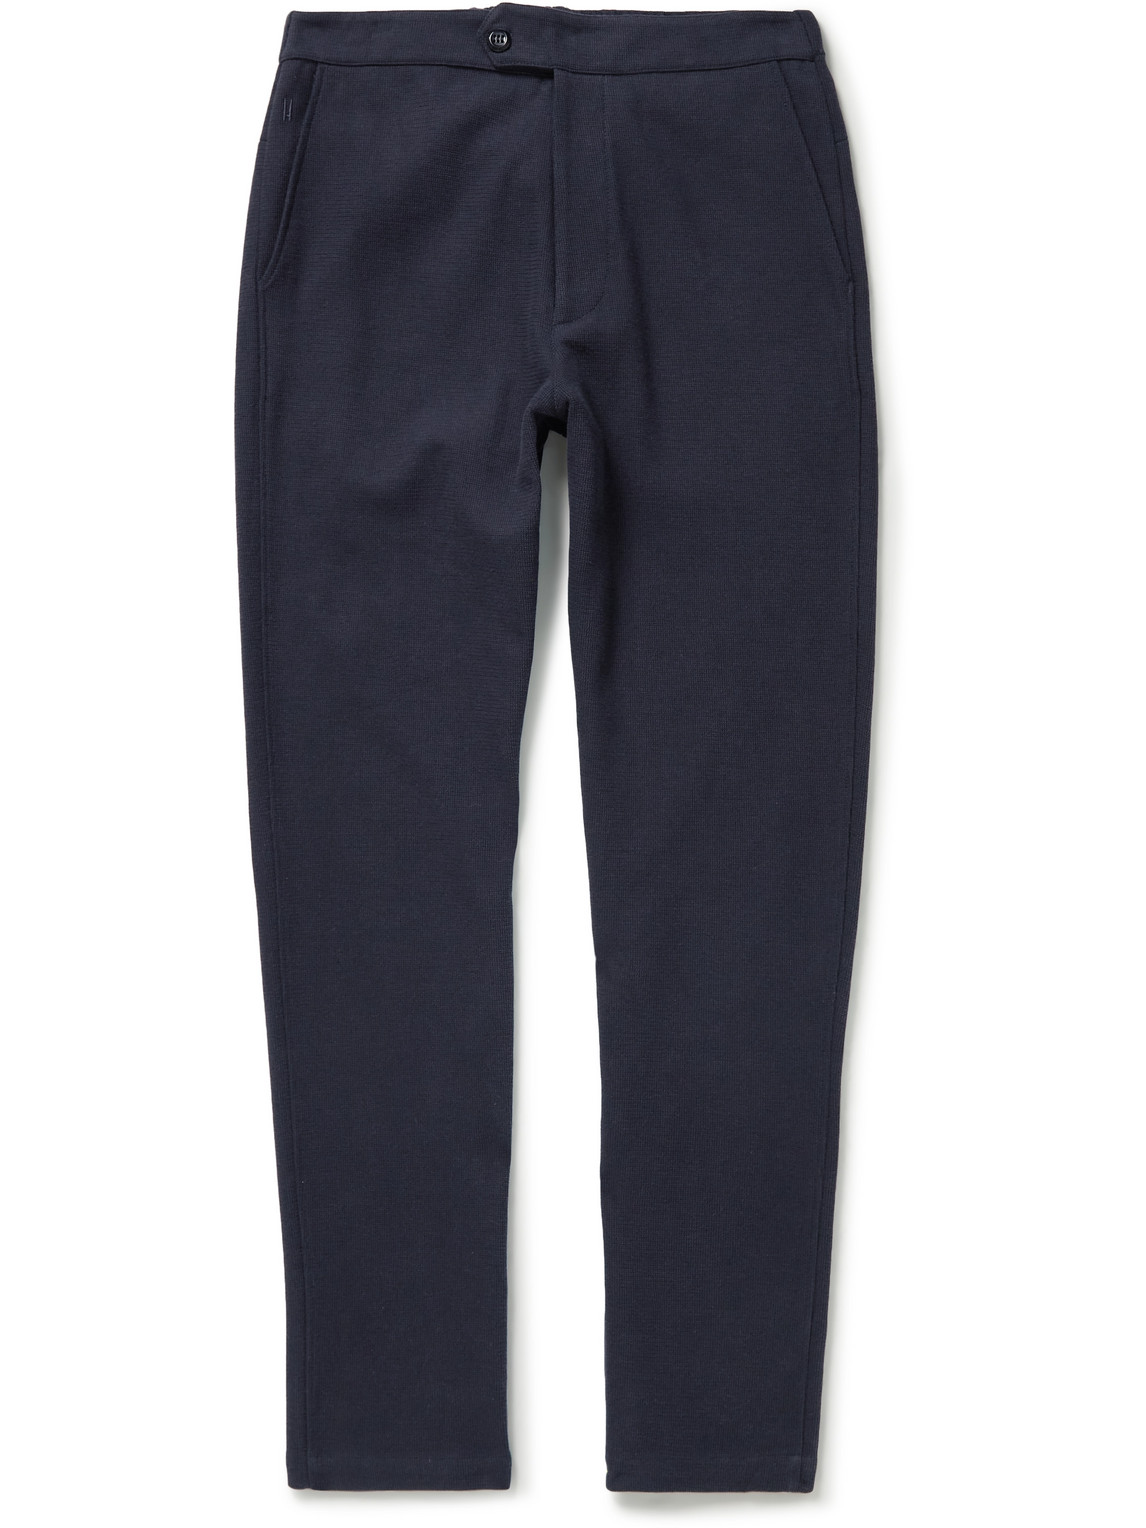 Hamilton And Hare Travel Embroidered Waffle-knit Cotton-blend Trousers In Blue